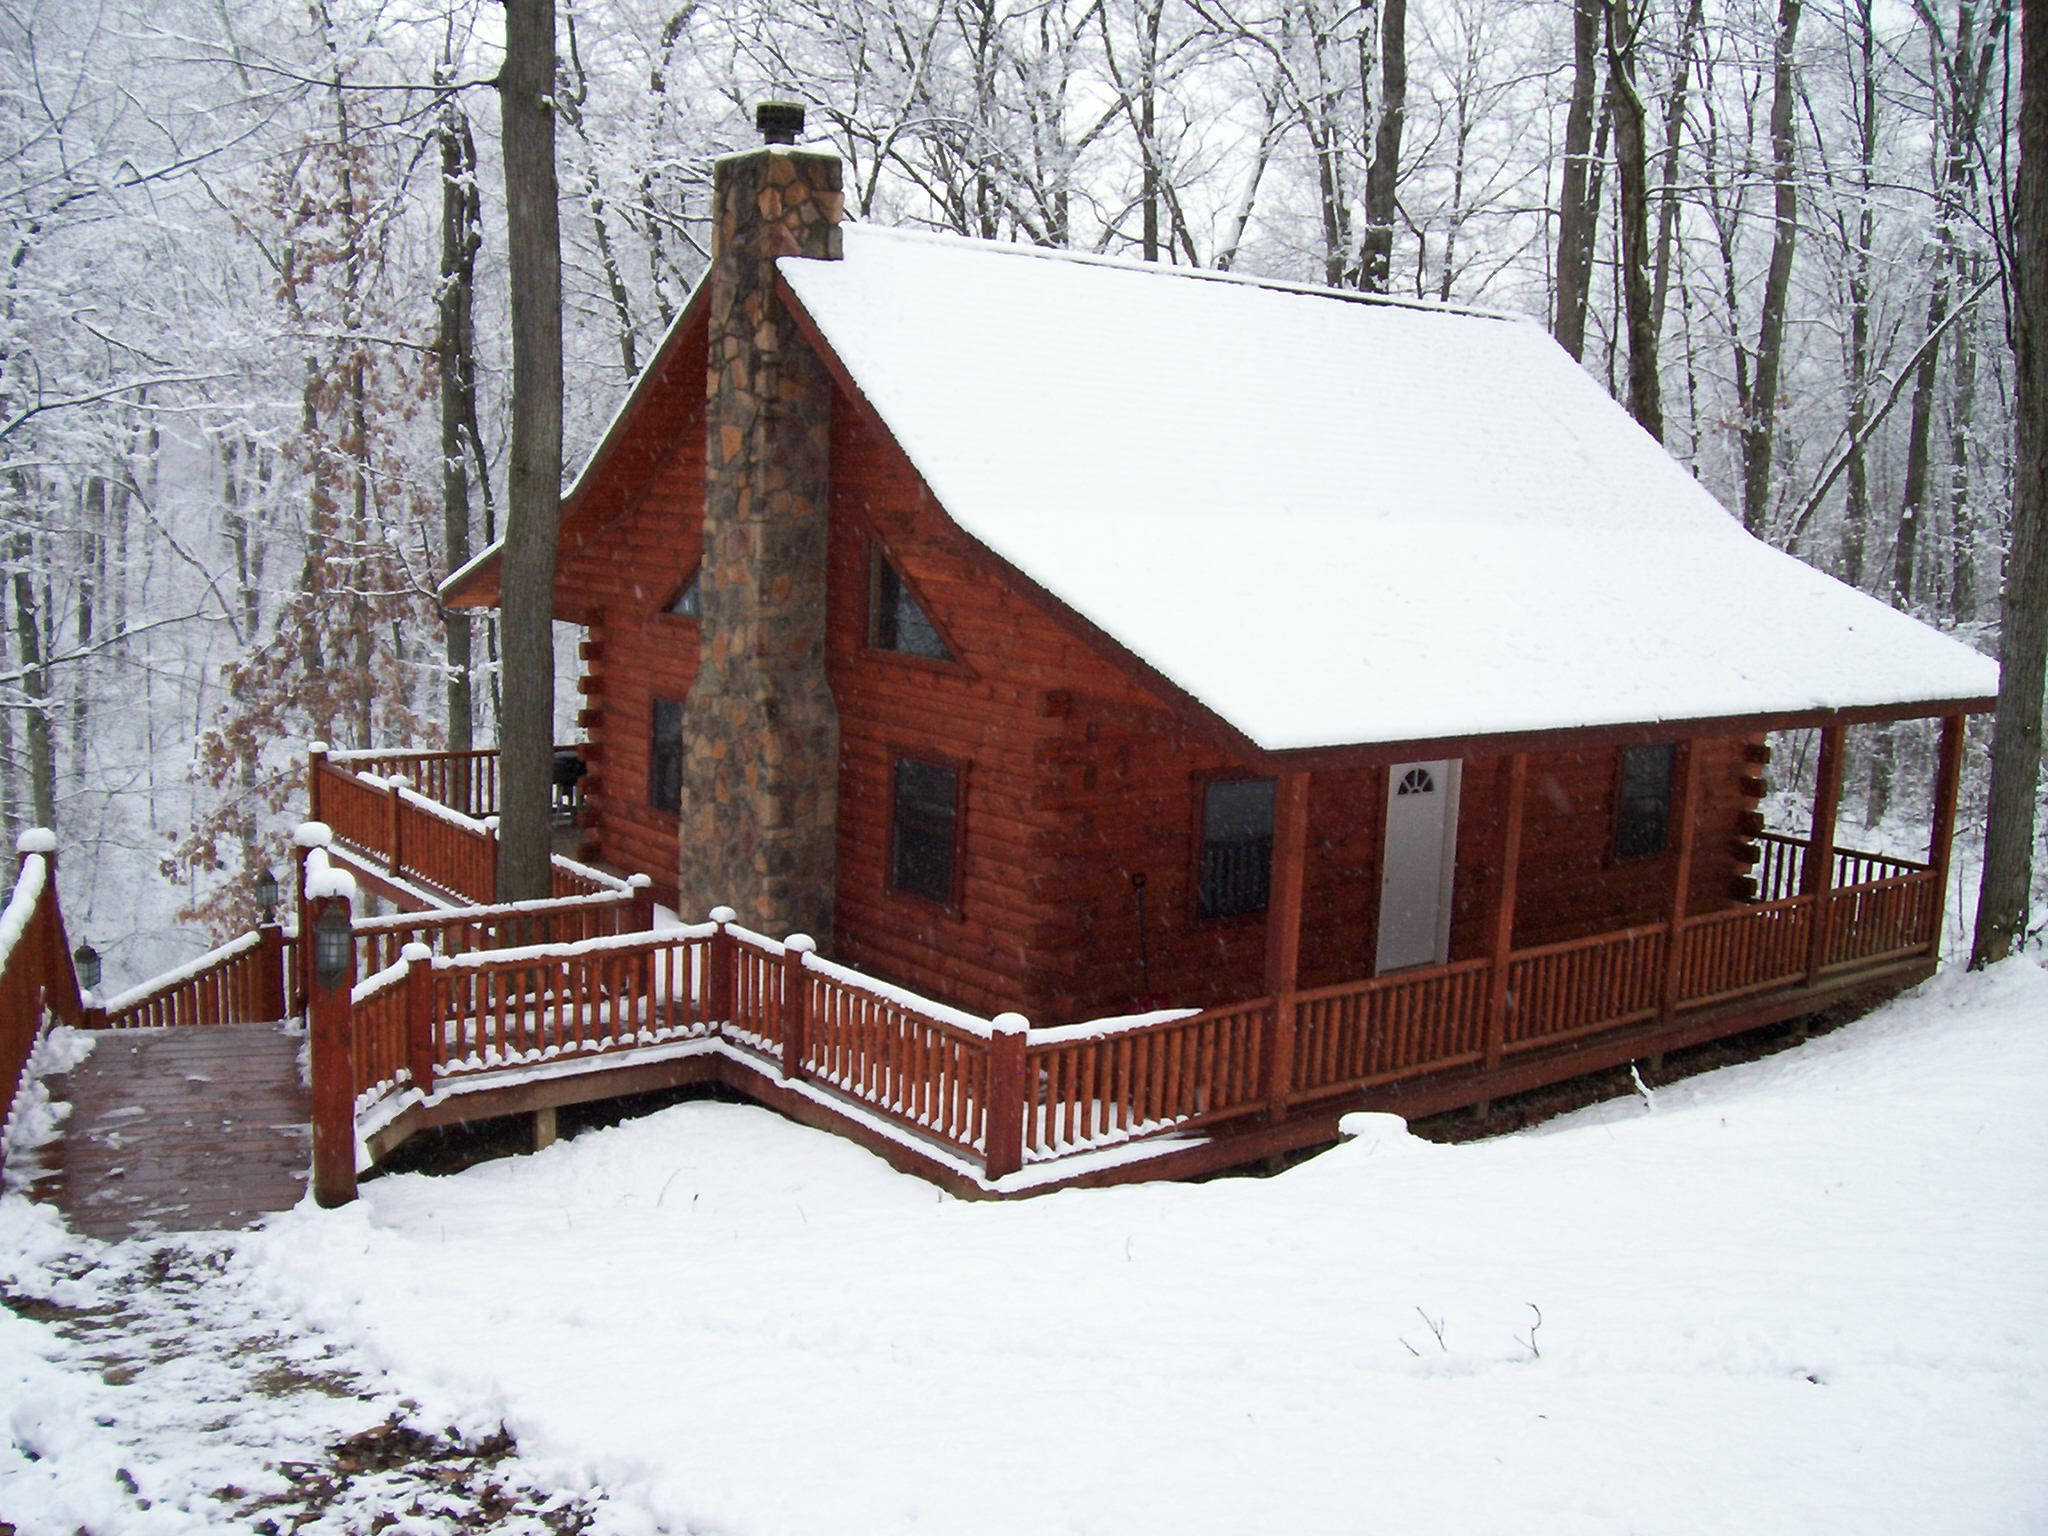 ohio cumberland a located private beautiful official cabins rental to img visitor getaways cottage in lake rentals cabin romantic on luxury close